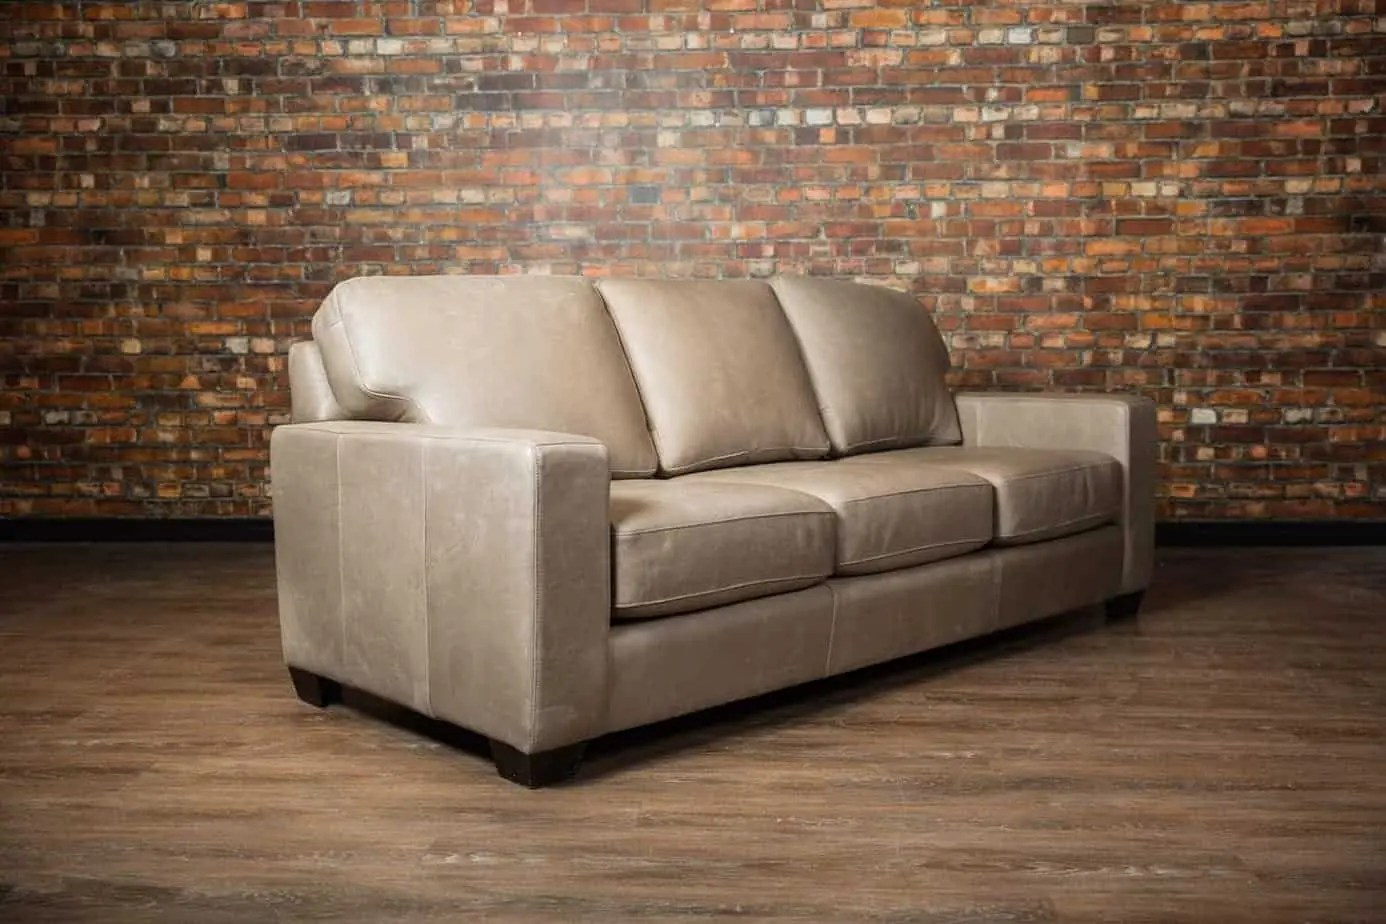 Leather Couch Canada The Mesa Leather Sofa Bed Collection Canada 39s Boss